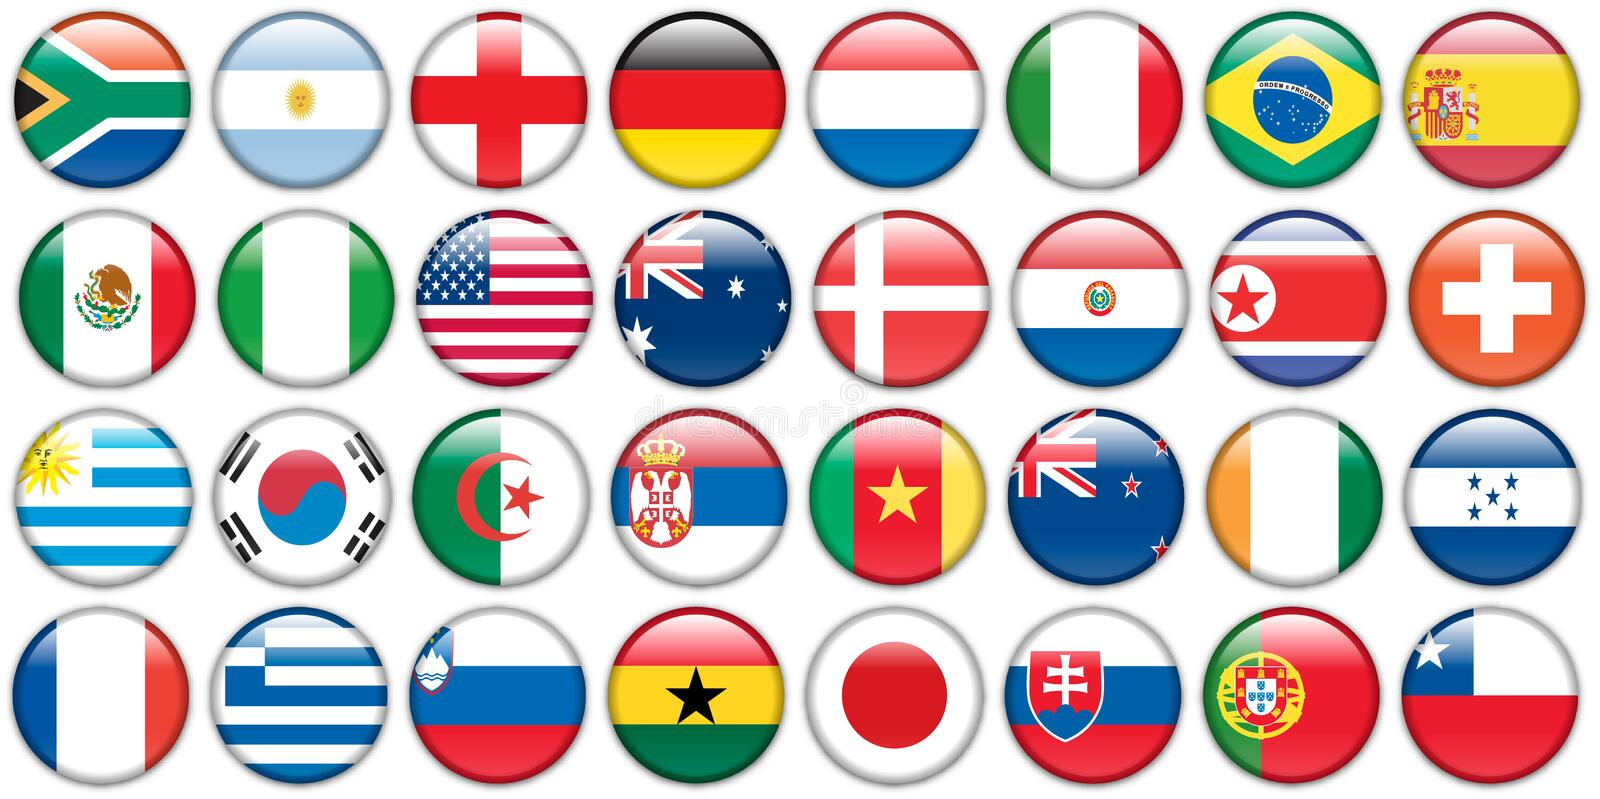 Download Stickers Buttons Of National Flags Stock Vector - Image: 12848842